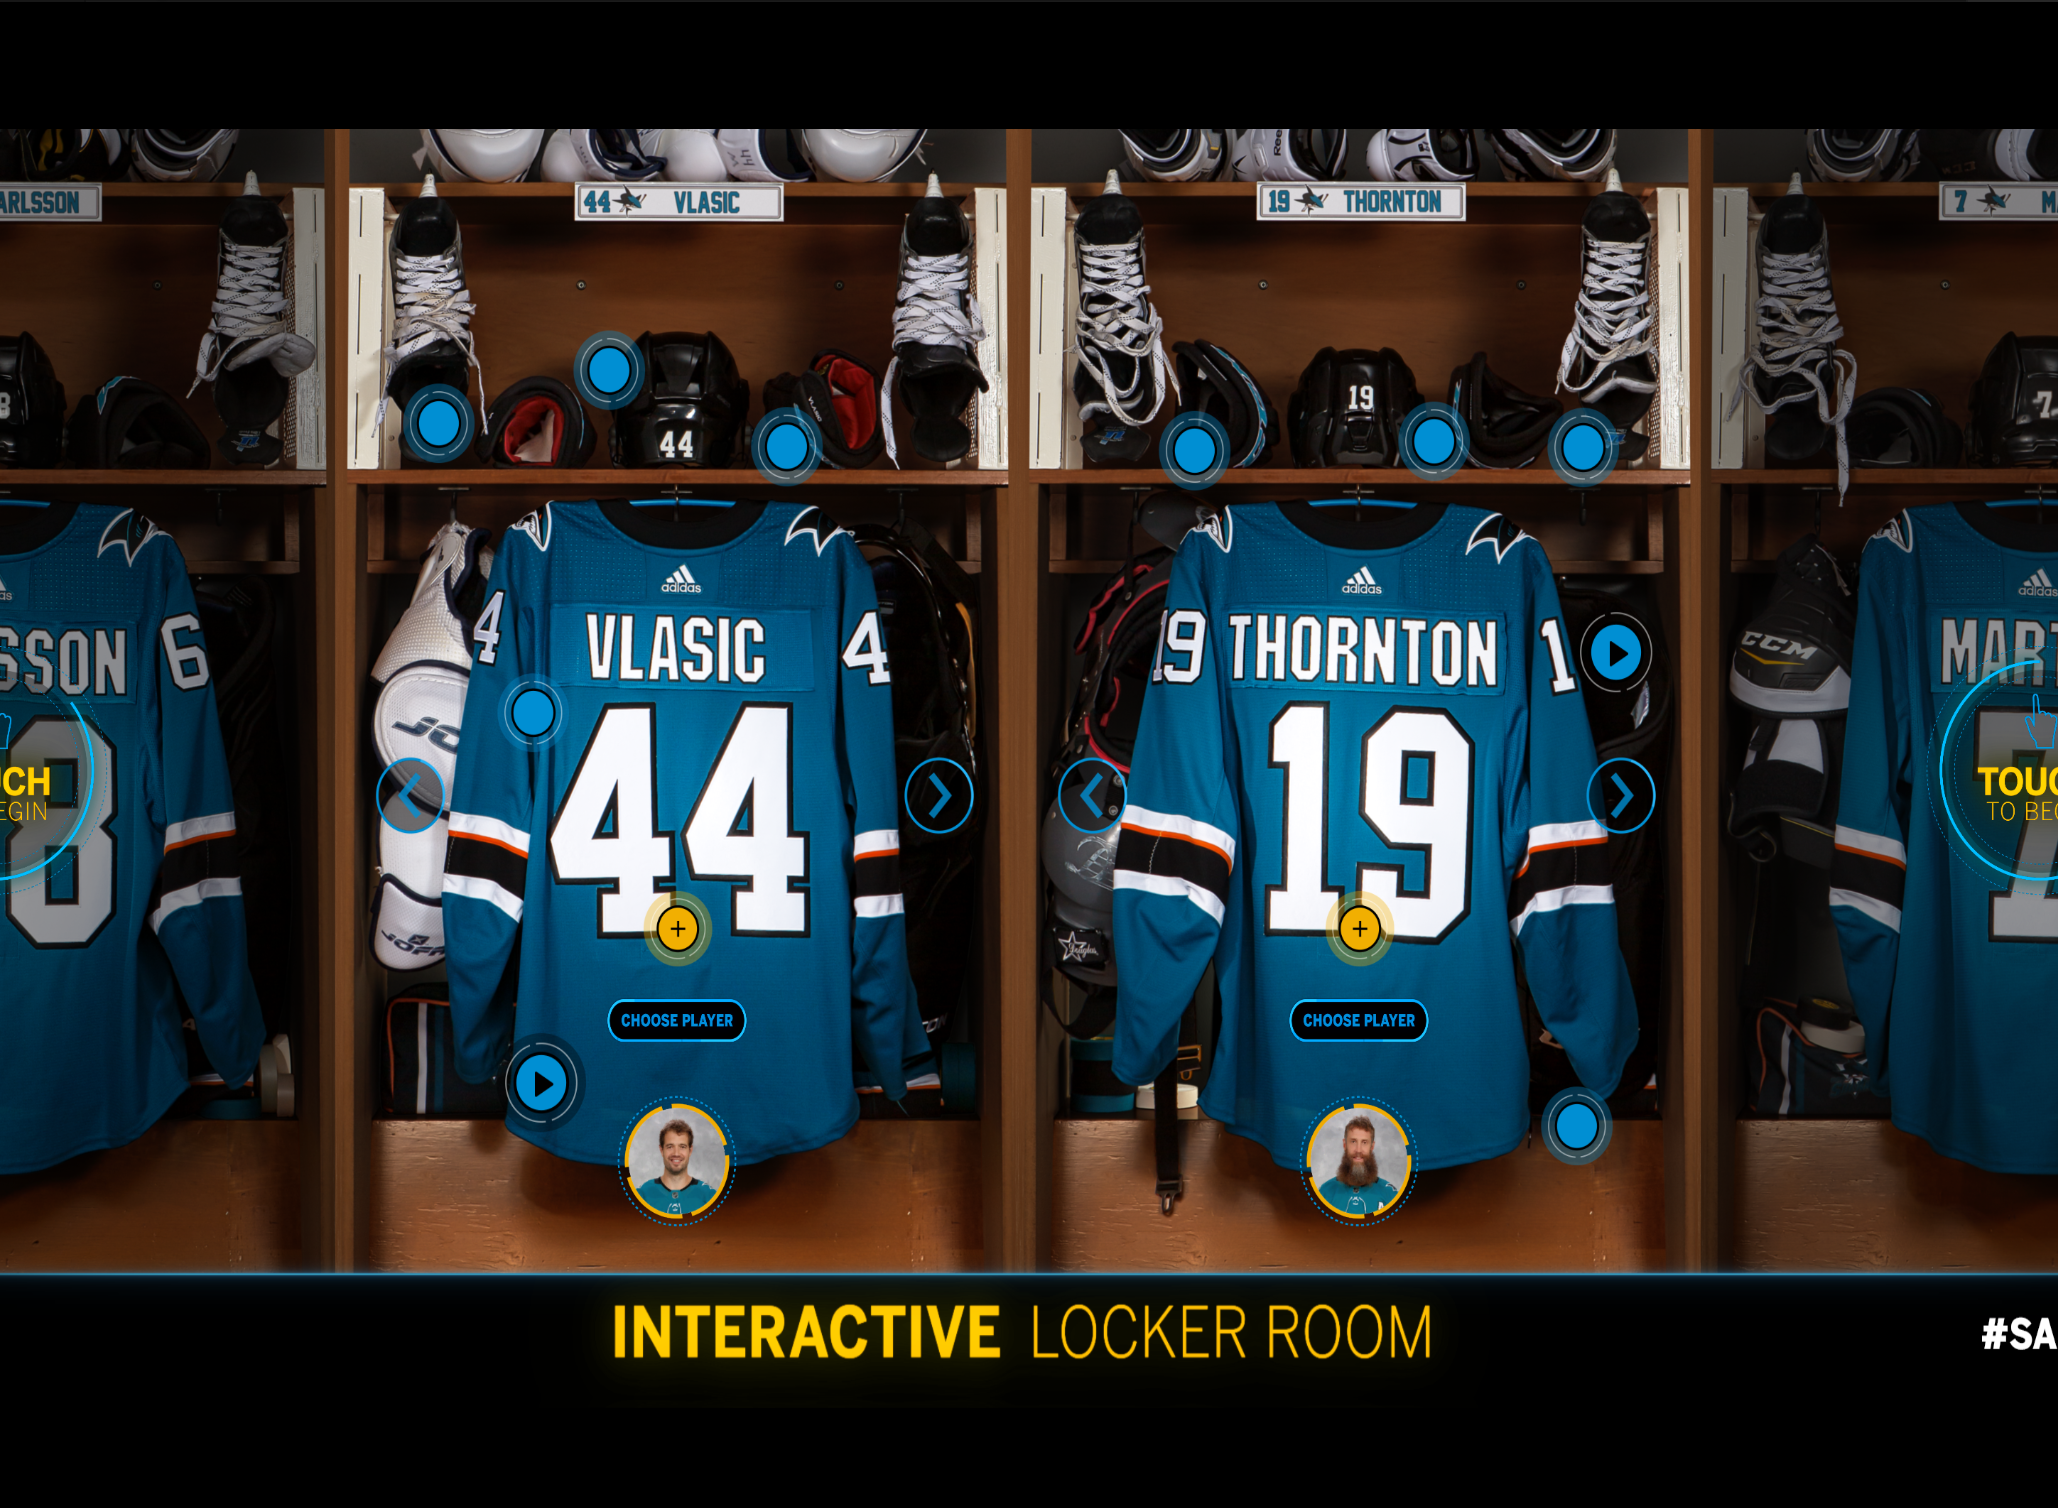 SAP Interactive Locker Room Experience